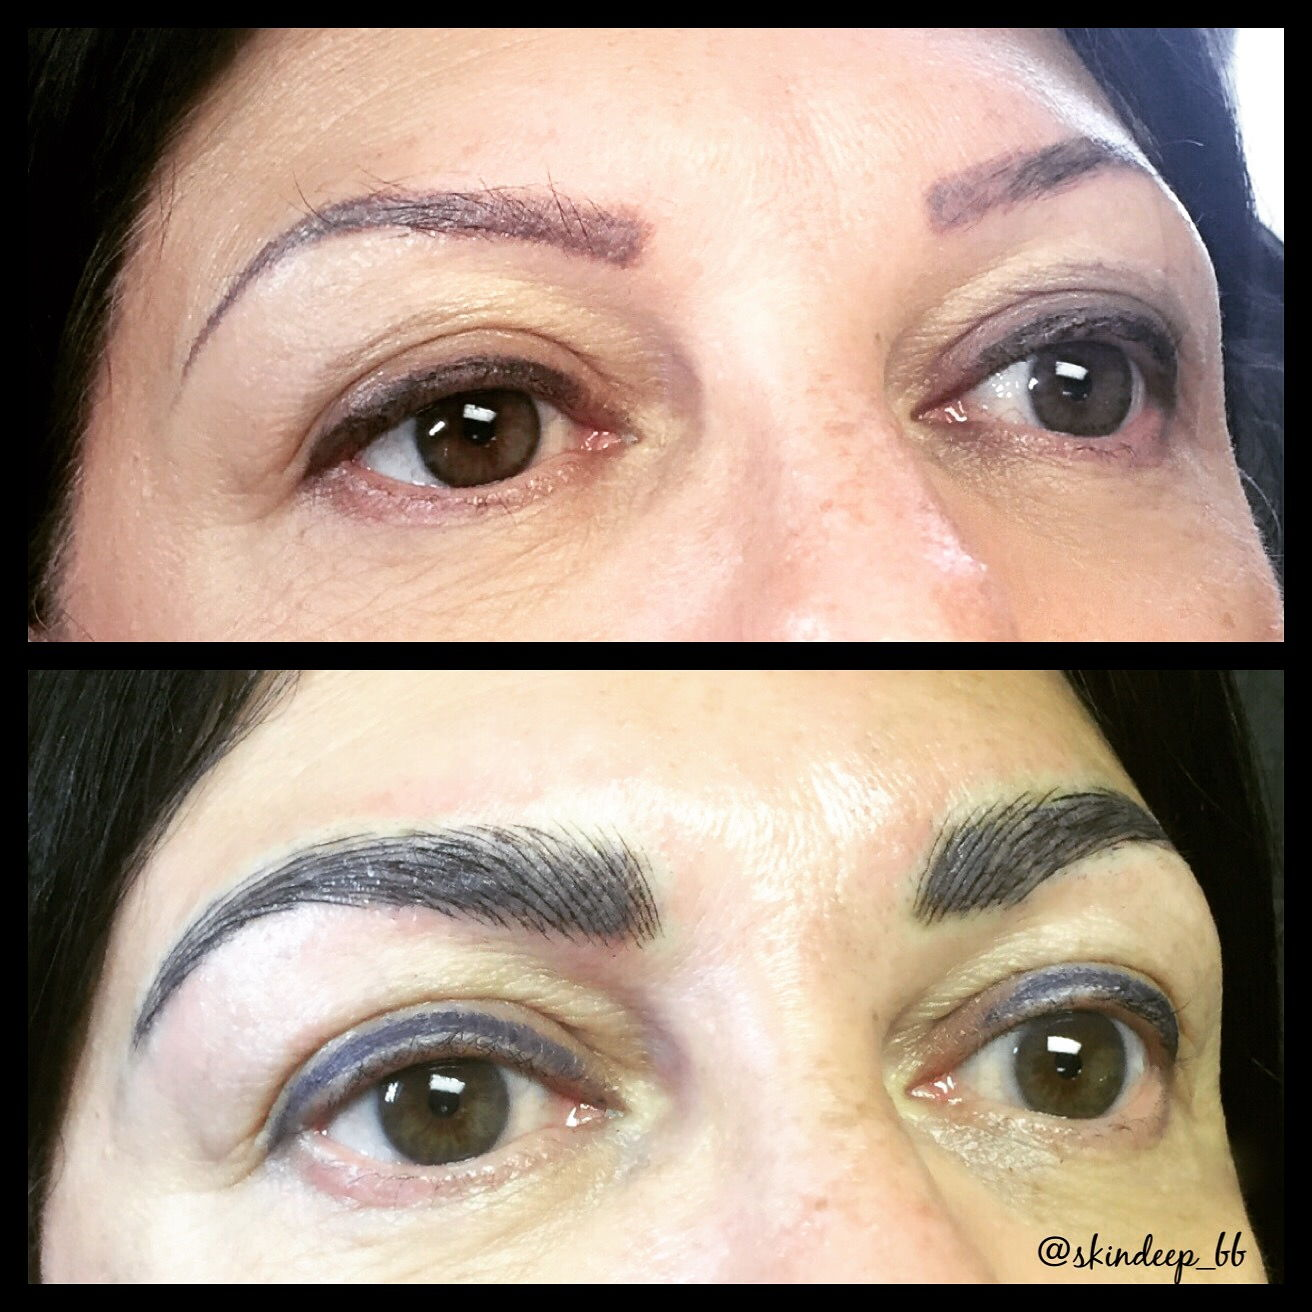 Tattoo coverup w/ Microblading